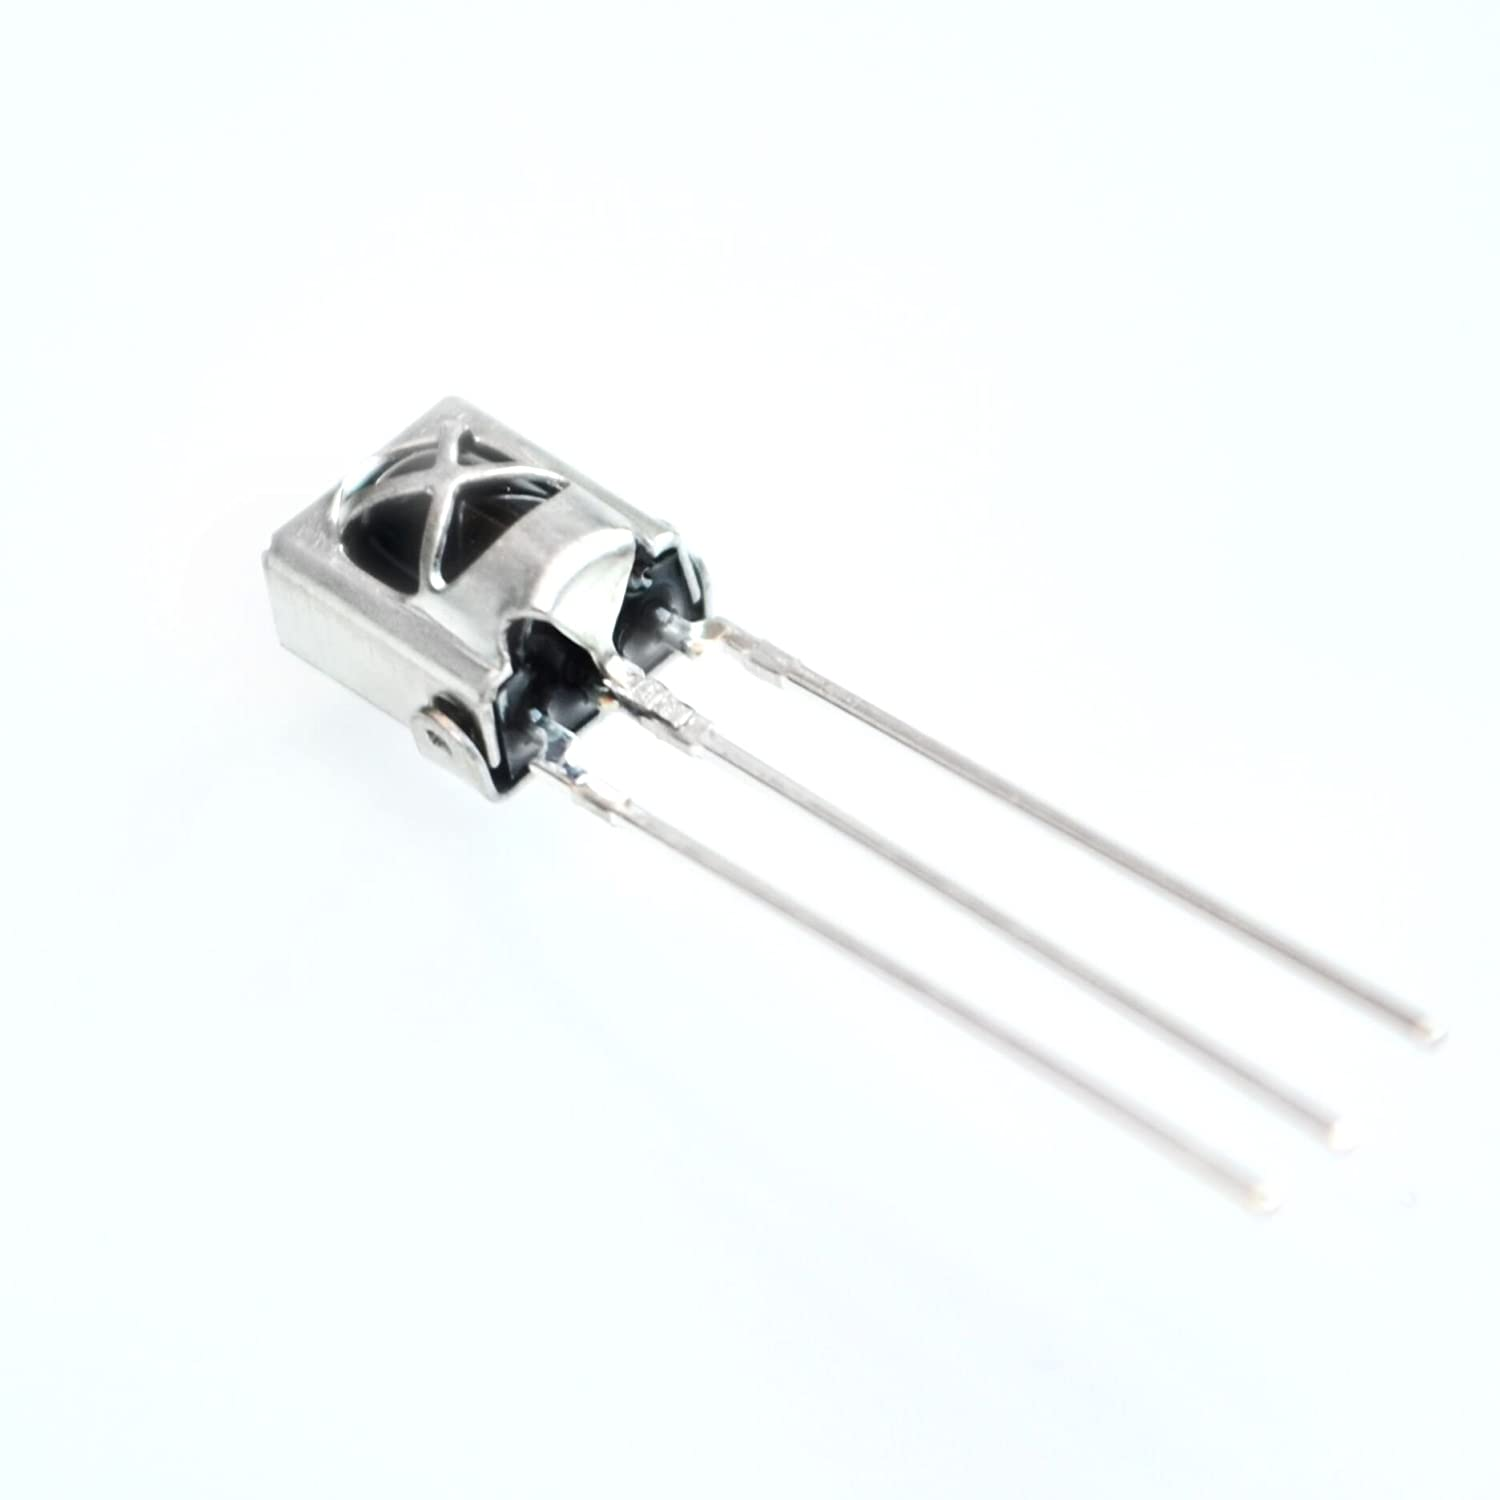 10pcs Universal Ir Infrared Receiver Tl1838 Vs1838b 1838 38khz Led Circuit Industrial Scientific